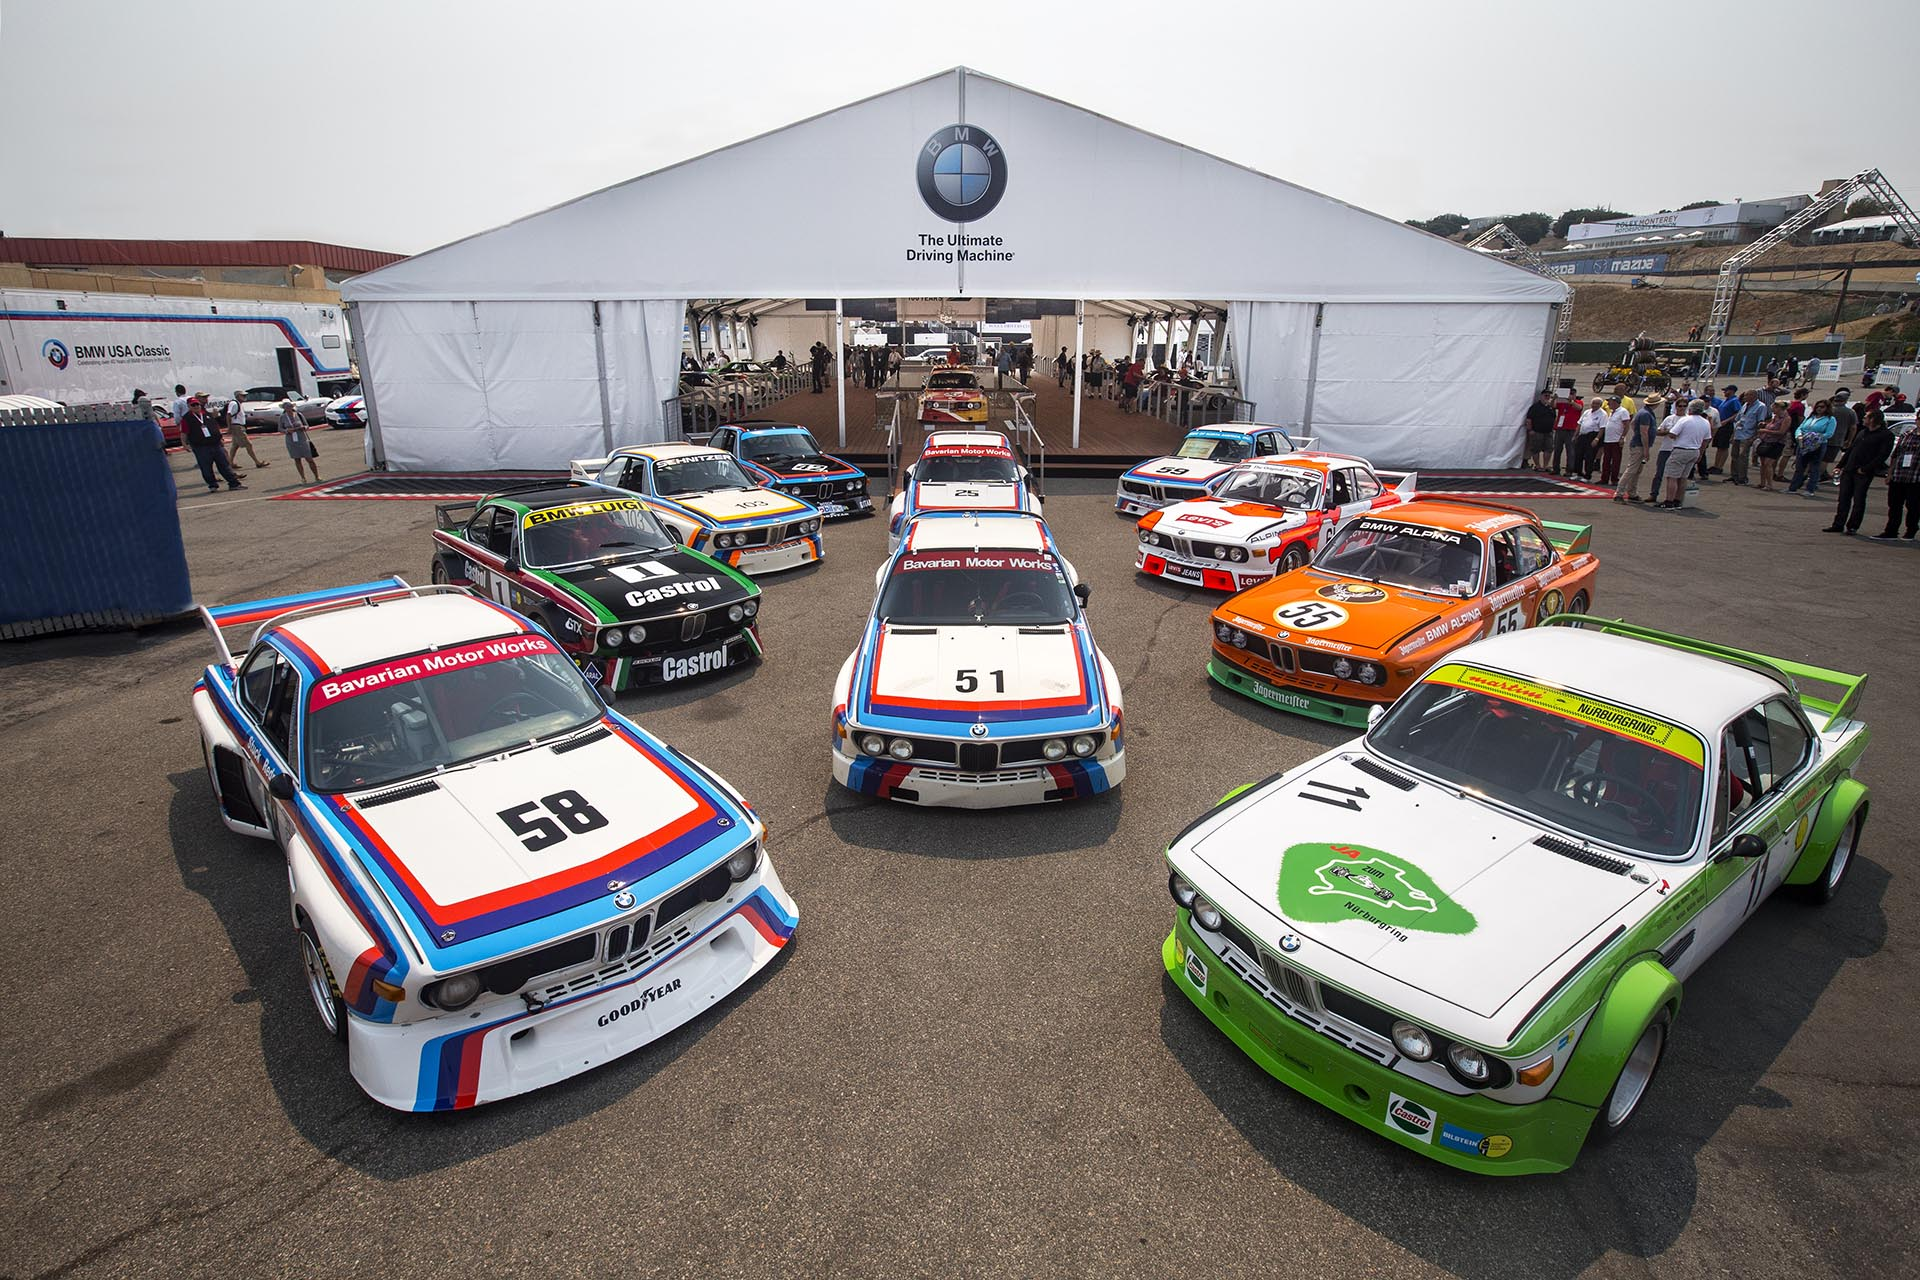 01_Group Shot of Iconic BMW 3.0 CSL race cars